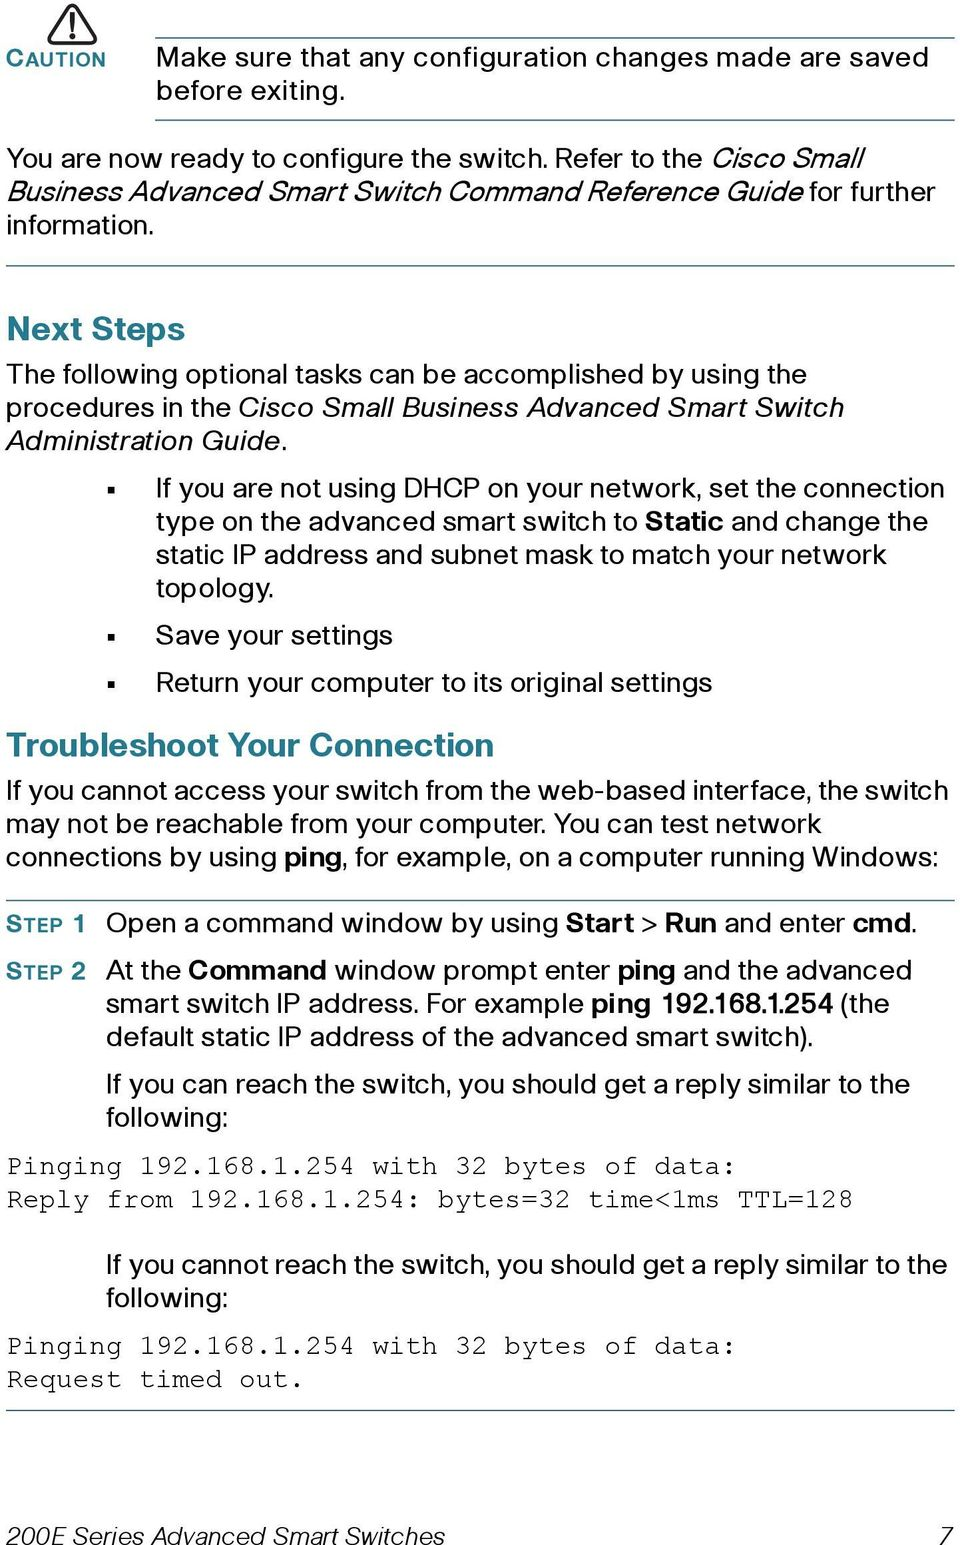 Next Steps The following optional tasks can be accomplished by using the procedures in the Cisco Small Business Advanced Smart Switch Administration Guide.